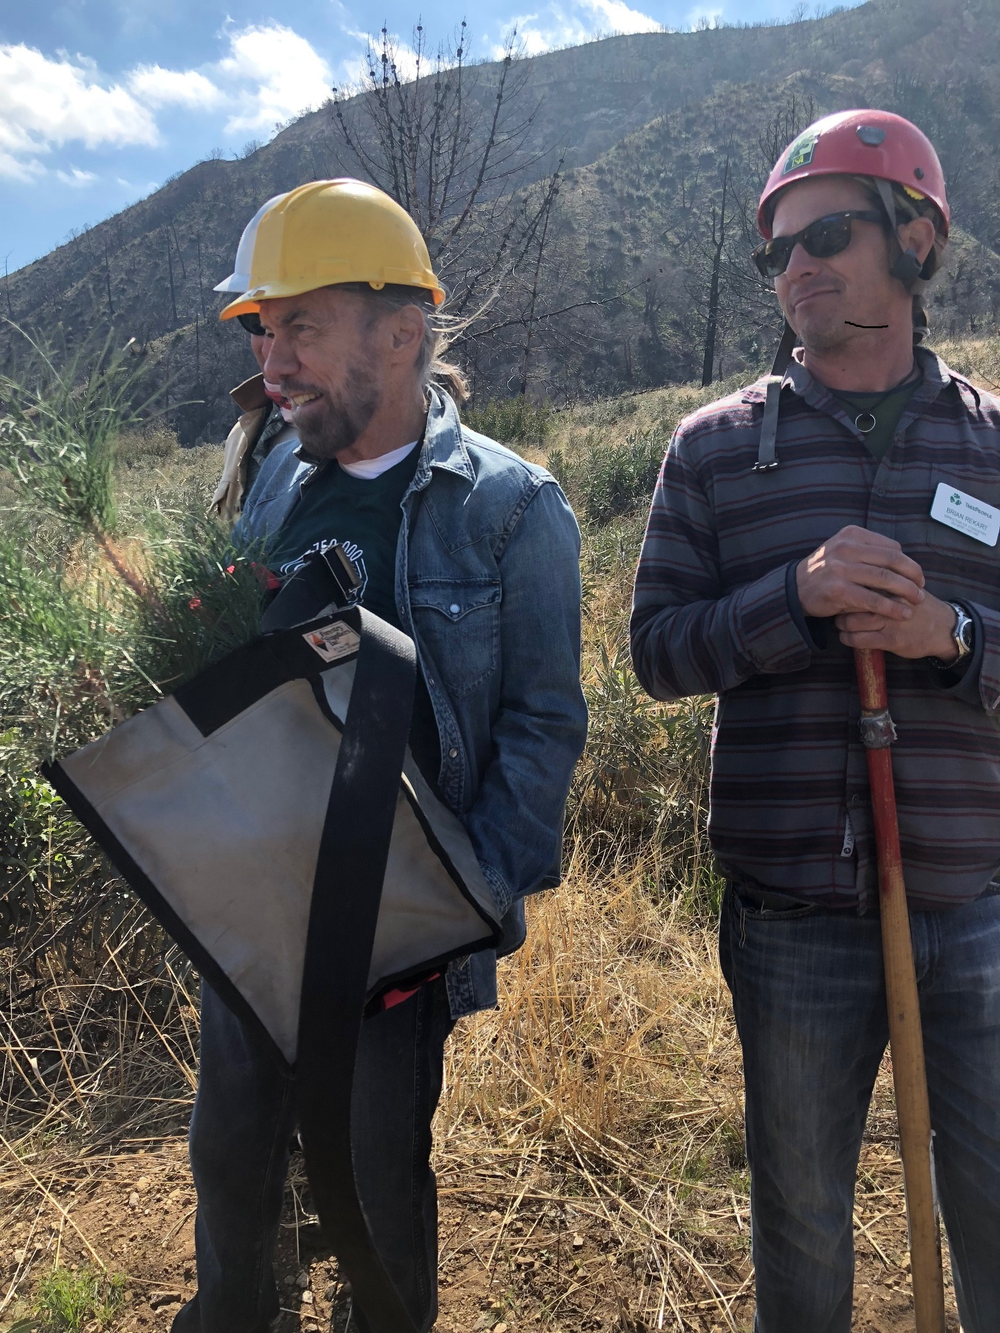 John Paul DeJoria preparing to plant in the Angeles National Forest.